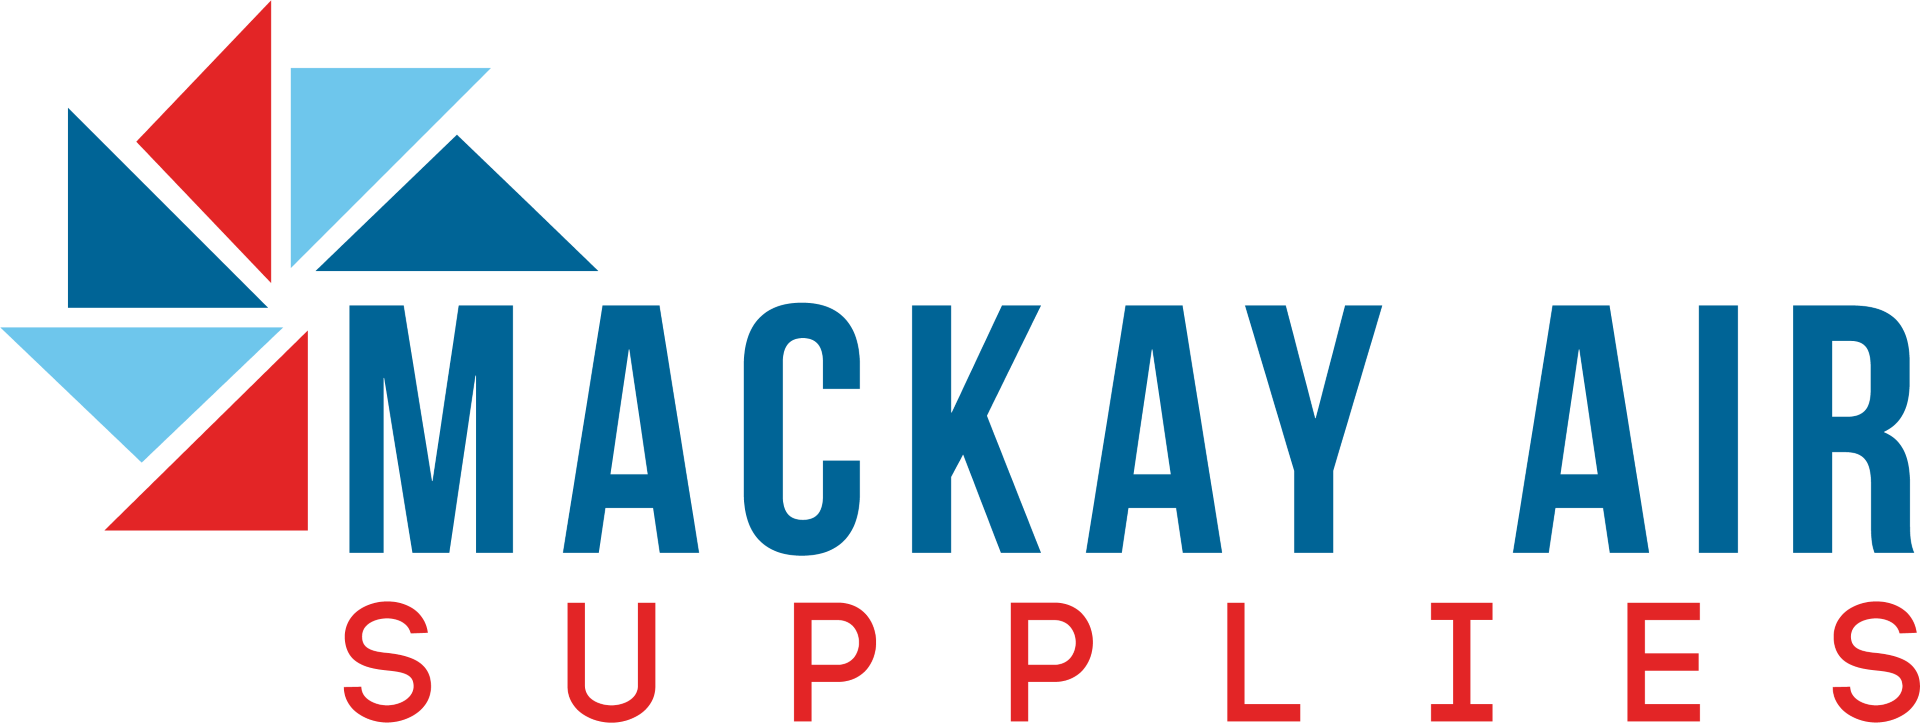 Mackay Air Supplies Logo